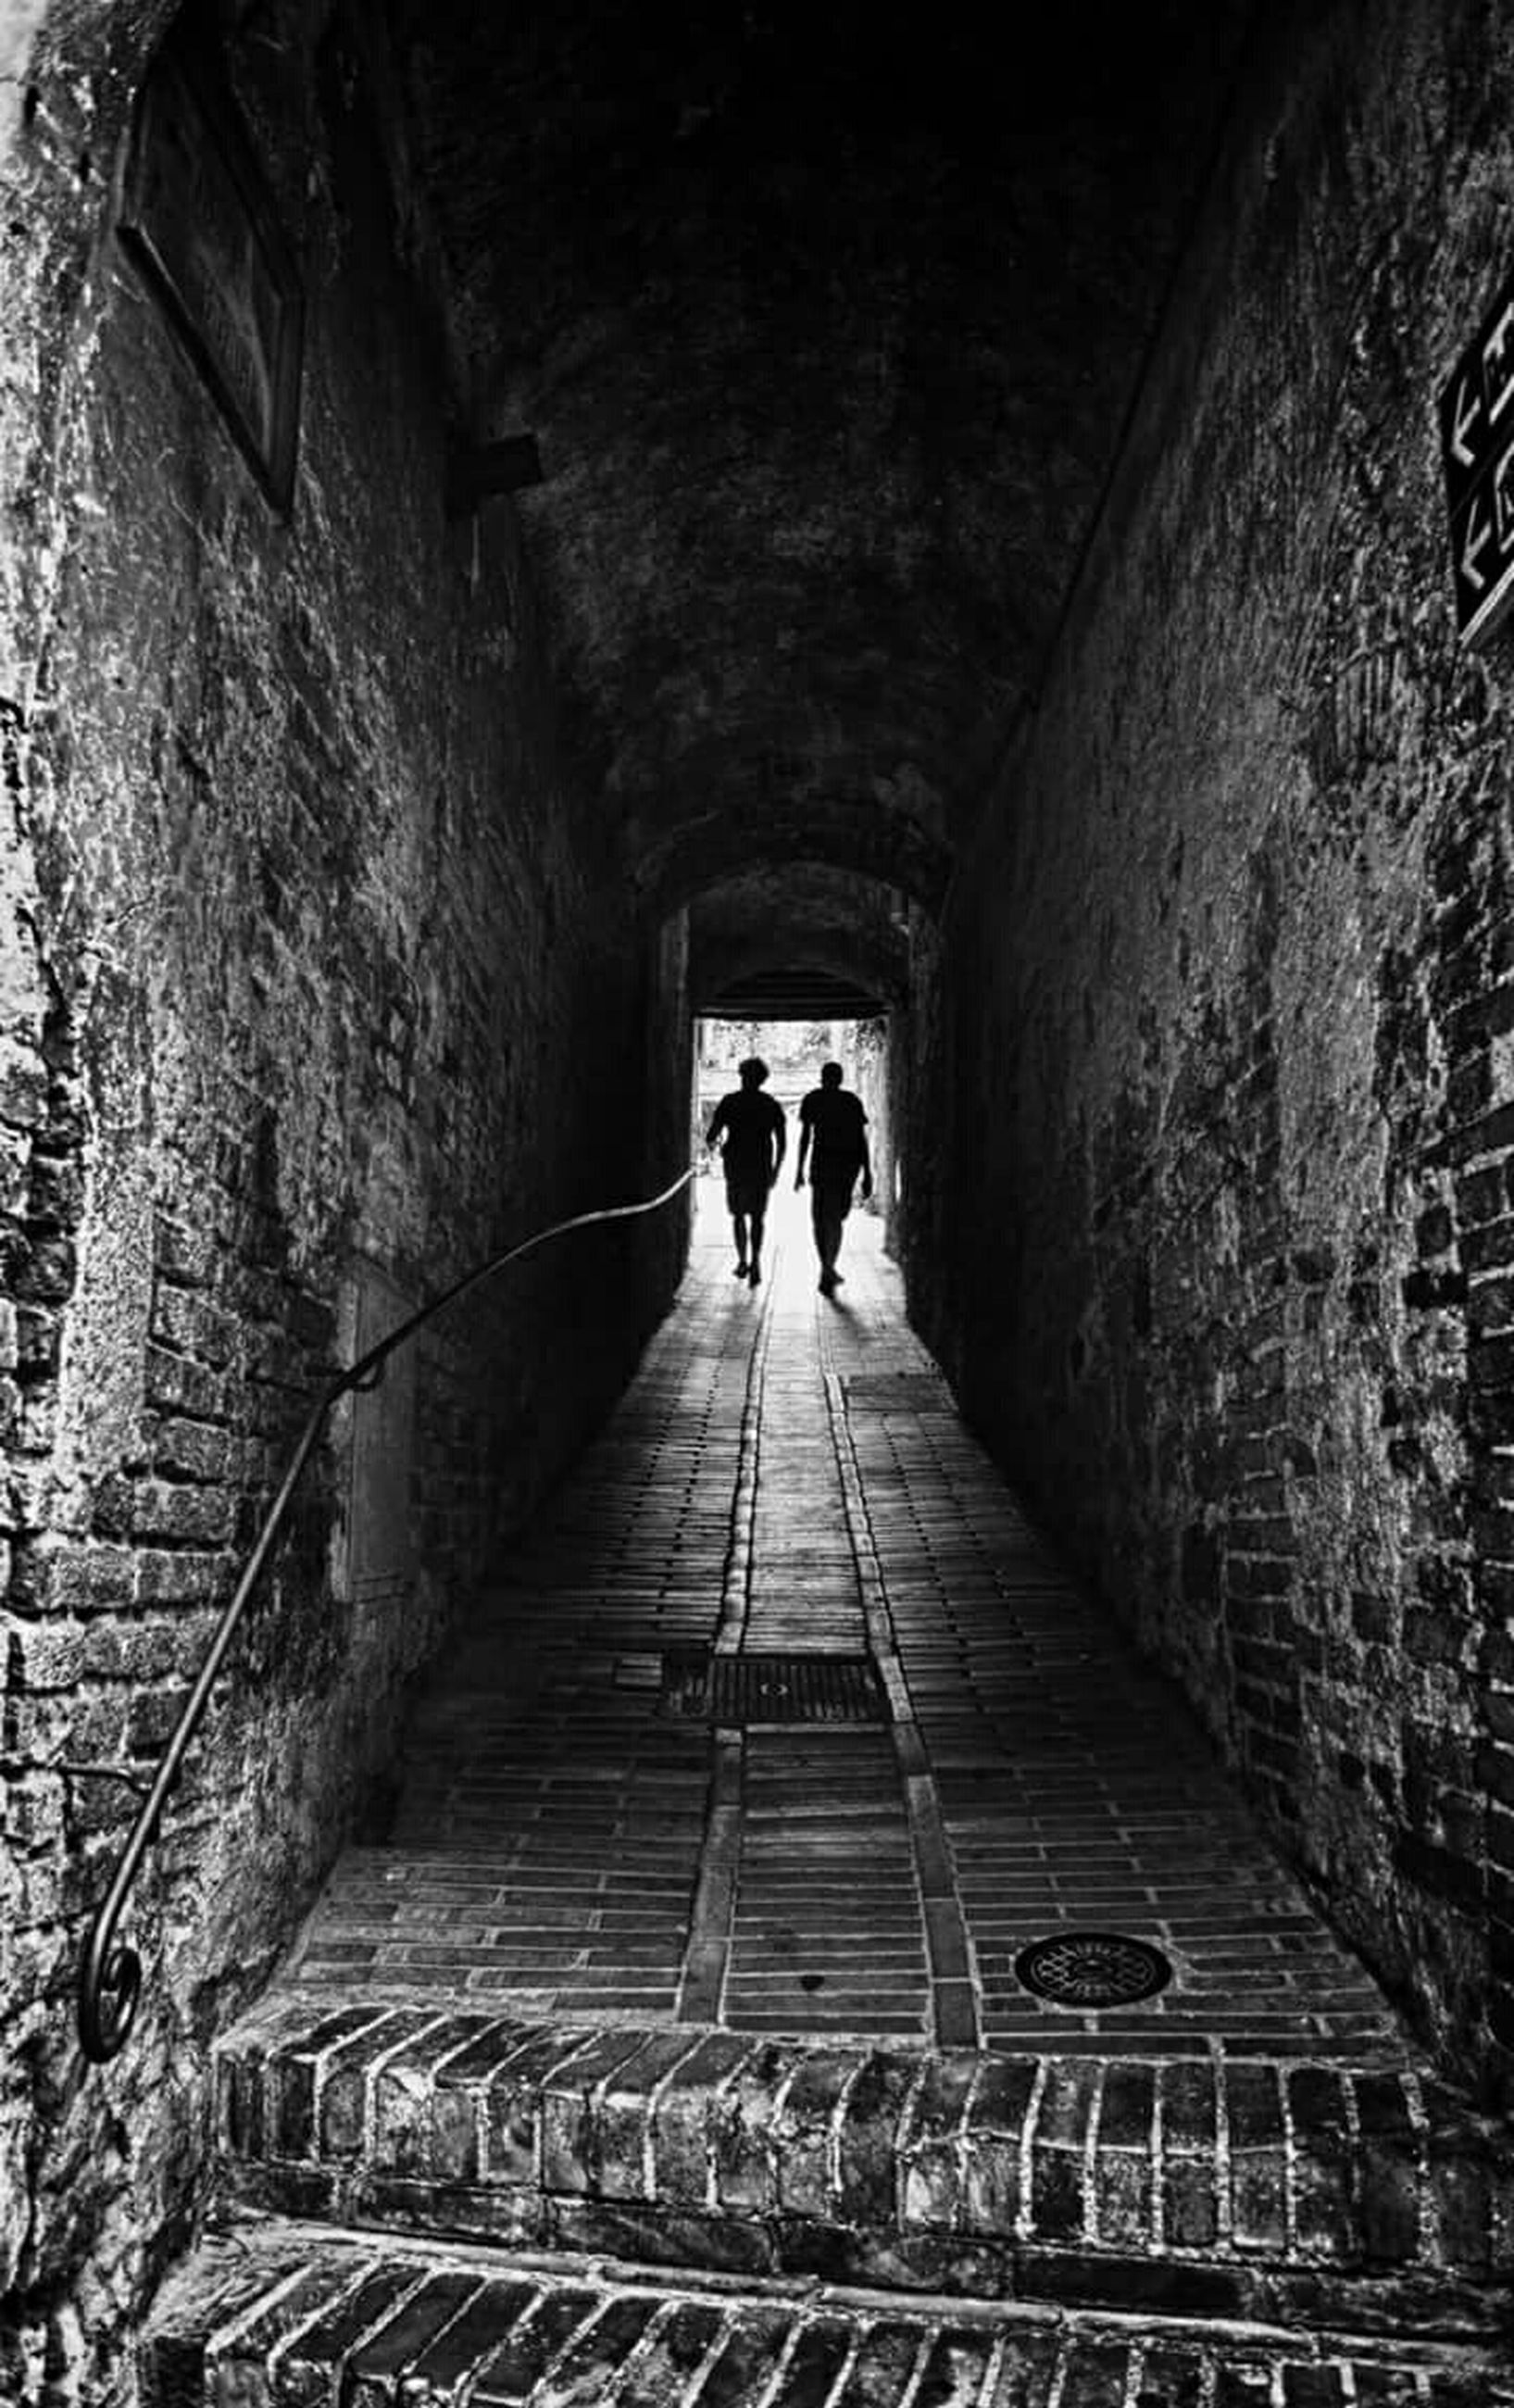 the way forward, architecture, built structure, men, walking, tunnel, lifestyles, indoors, rear view, full length, diminishing perspective, person, leisure activity, vanishing point, arch, railing, wall - building feature